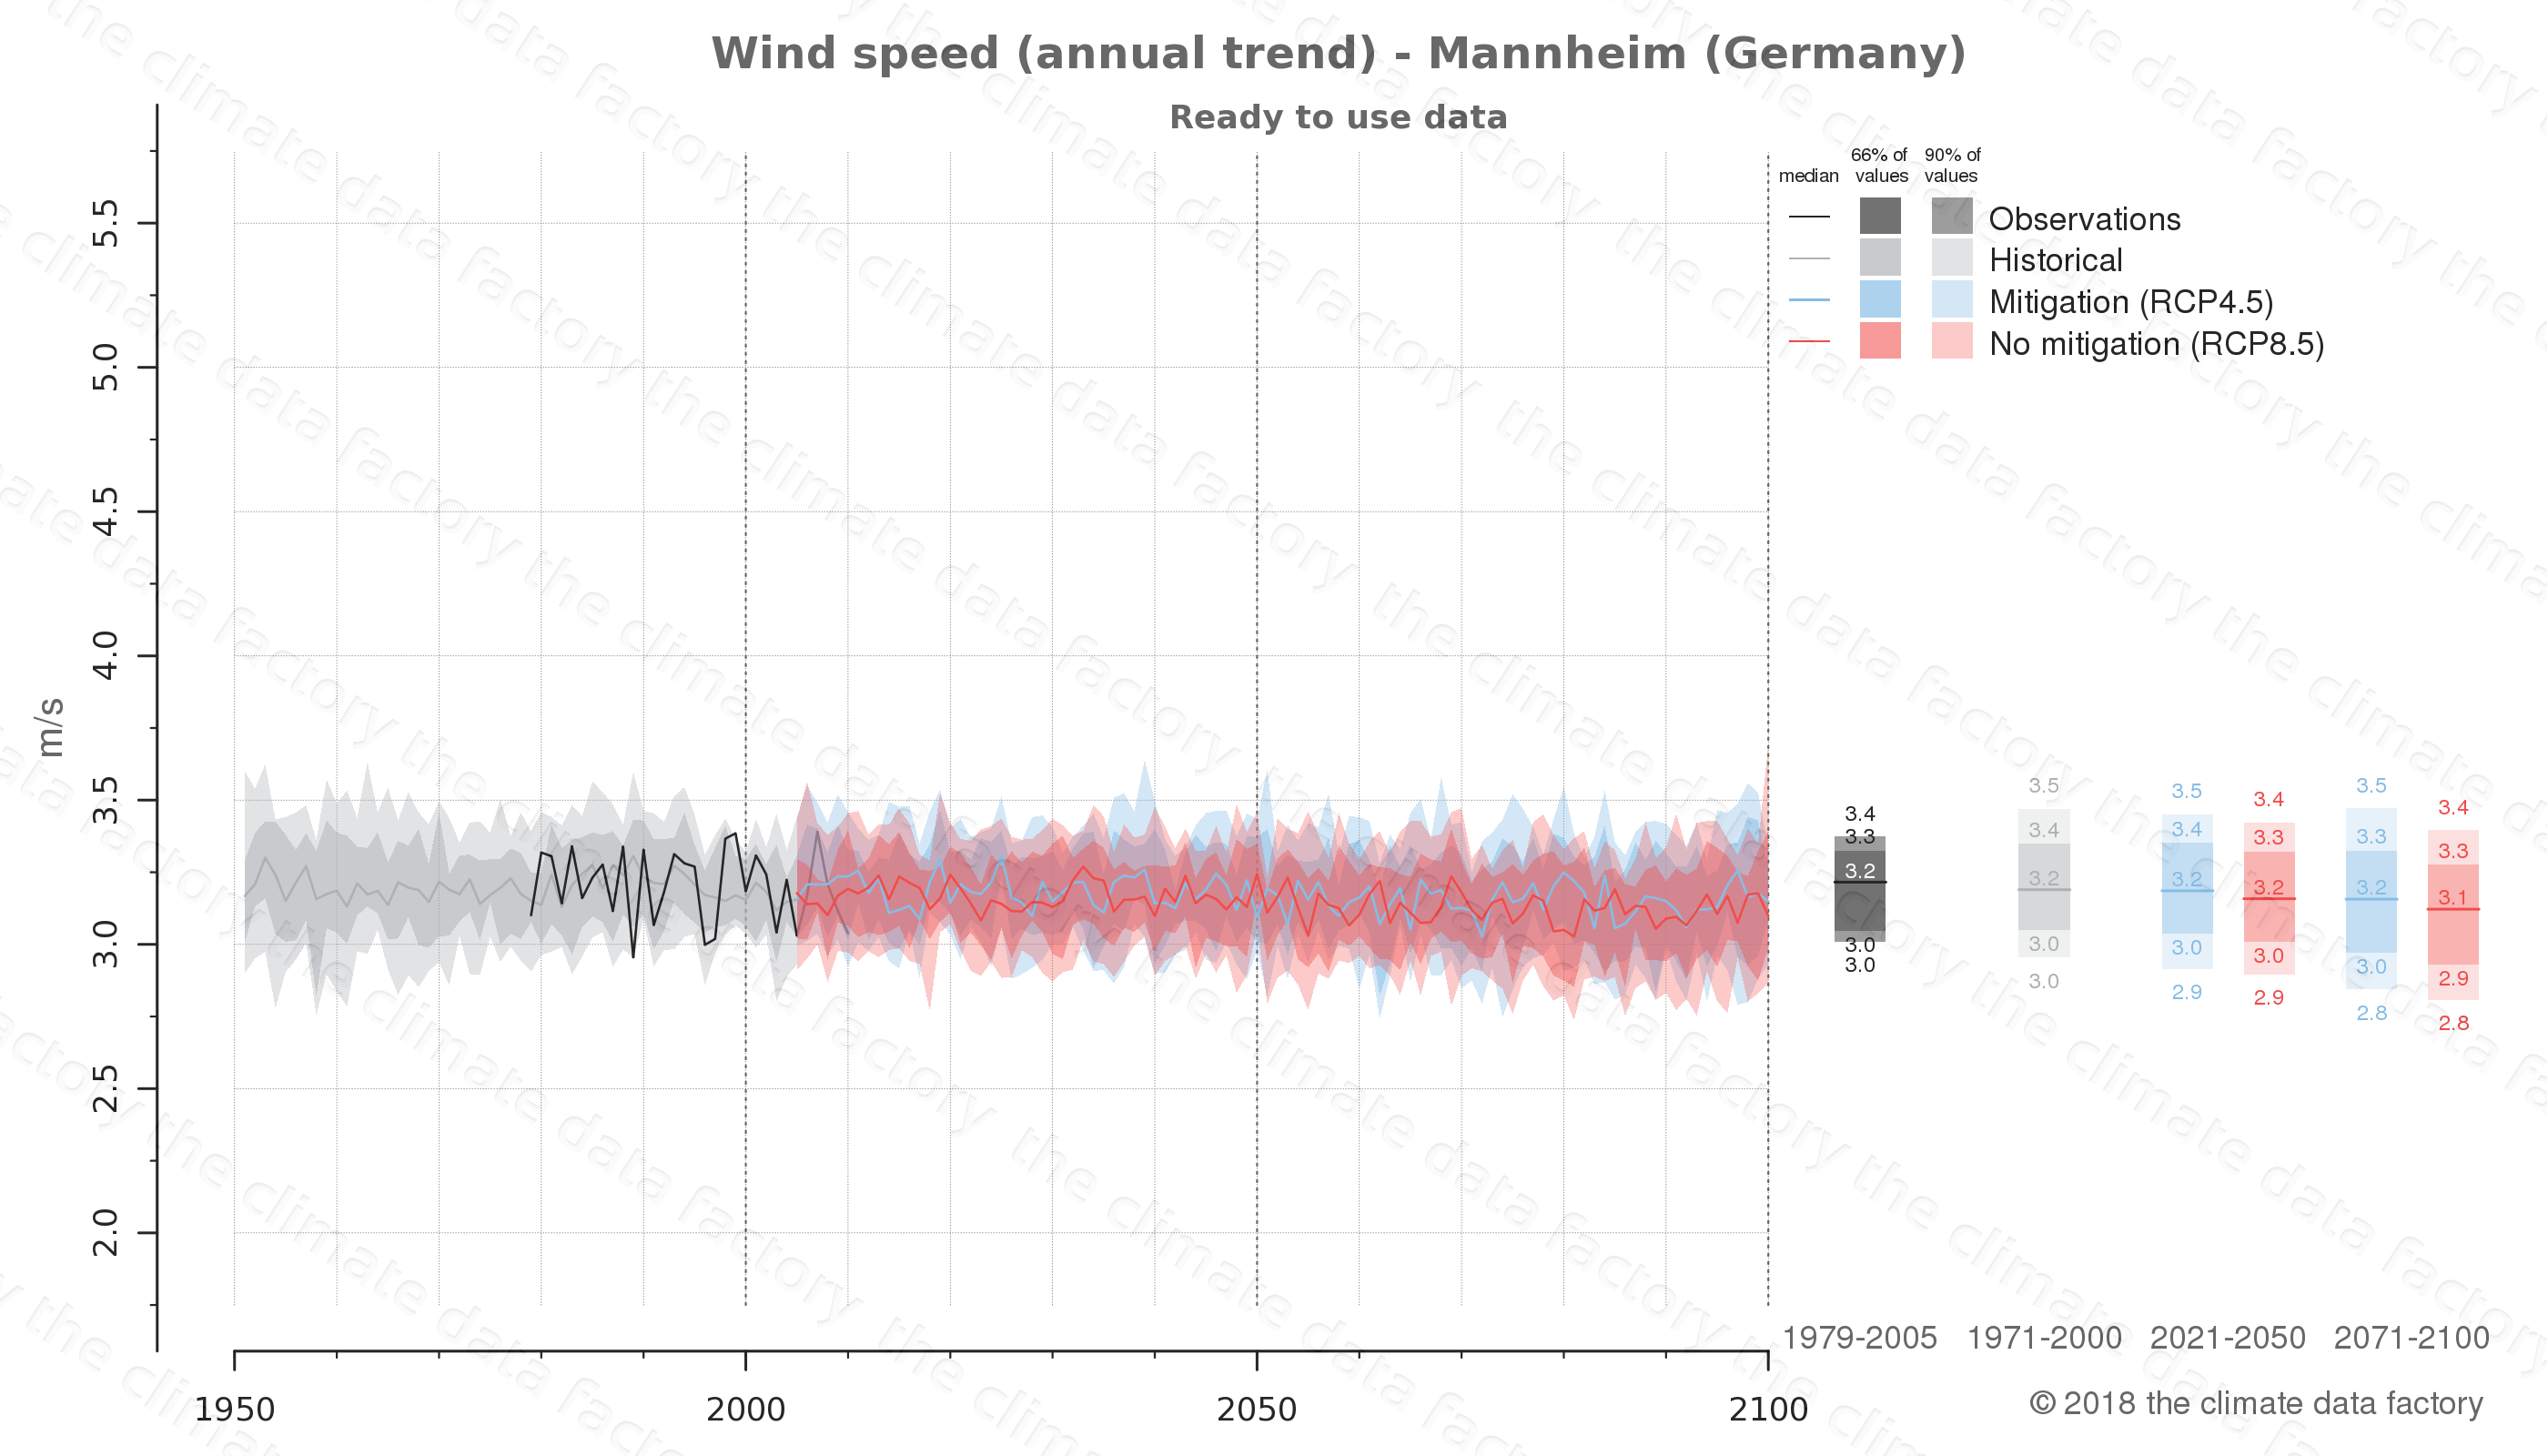 climate change data policy adaptation climate graph city data wind-speed mannheim germany